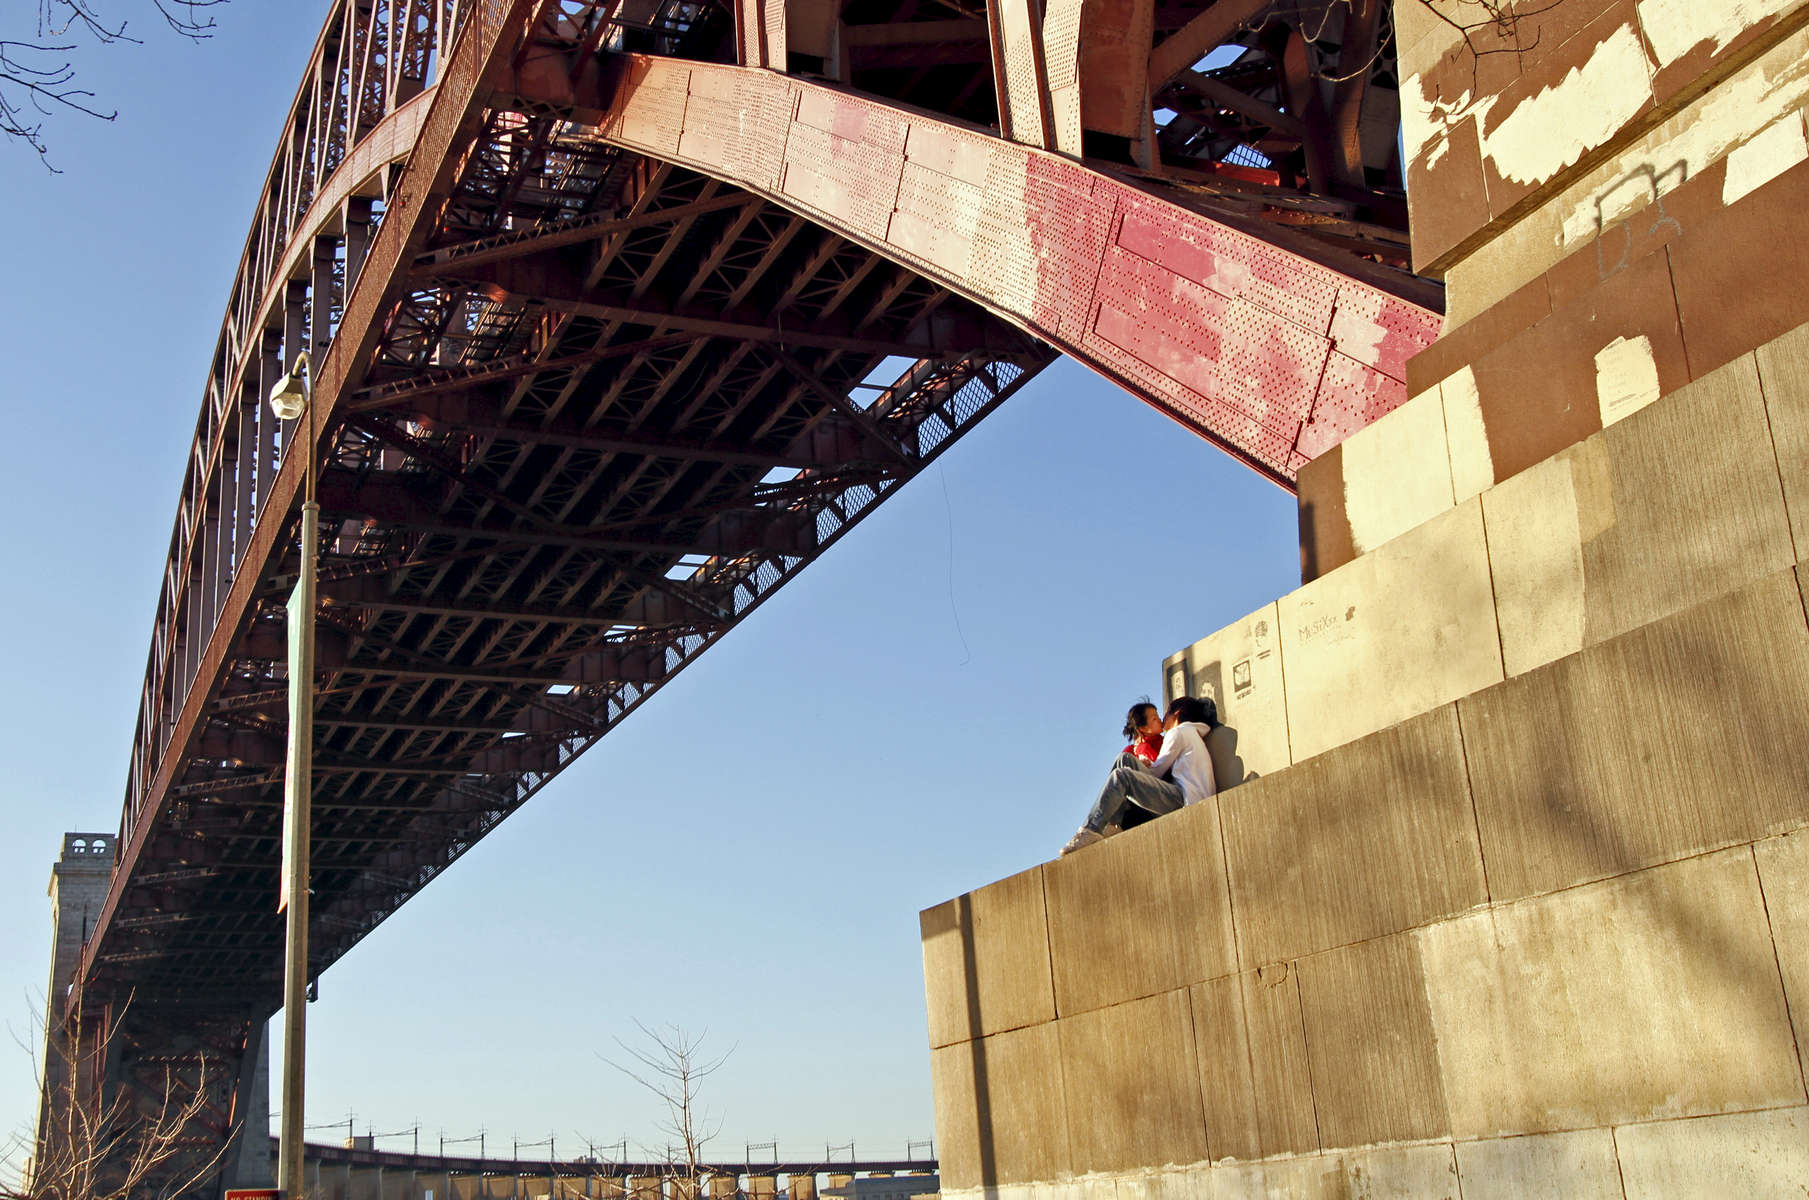 Kenneth Cuesta, 21, and Lisa Wong, 21, of Forest Hills, Queens, kiss as they watch the sunset under the Hell Gate Bridge located at Shore Boulevard in Astoria, New York on March 17, 2010.